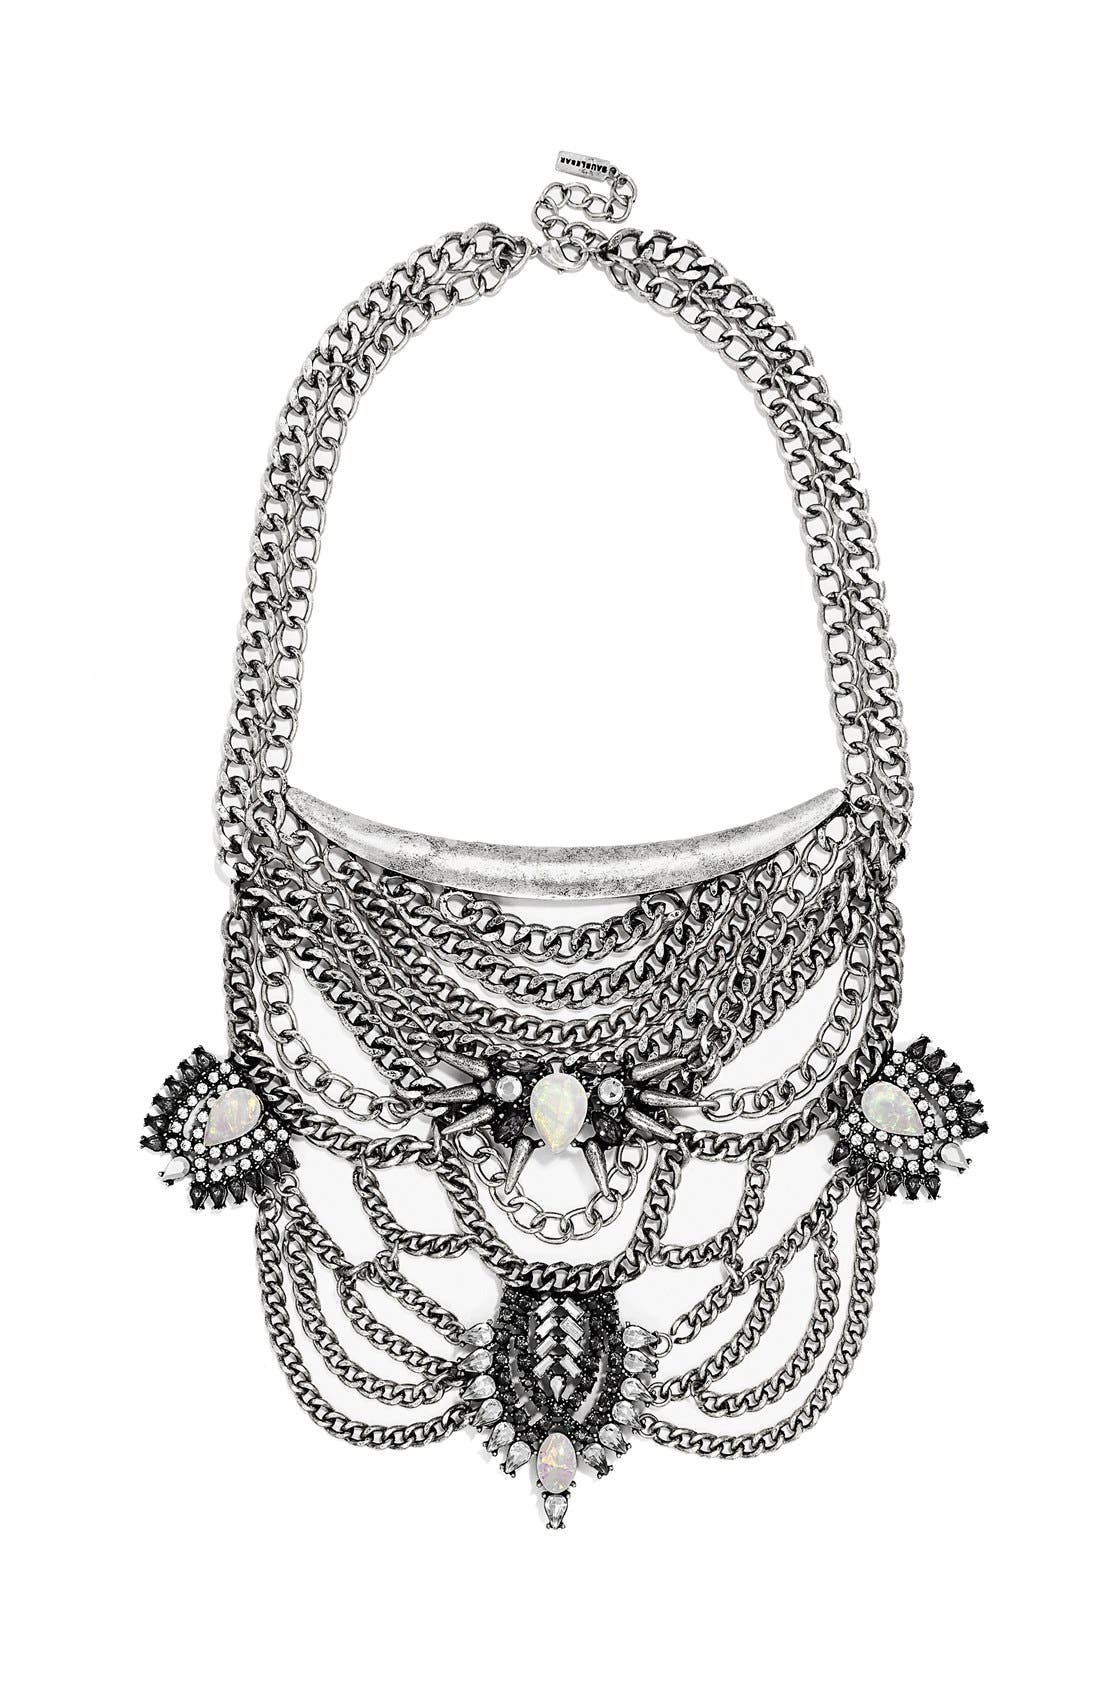 Alternate Image 1 Selected - BaubleBar 'Orwell' Bib Necklace